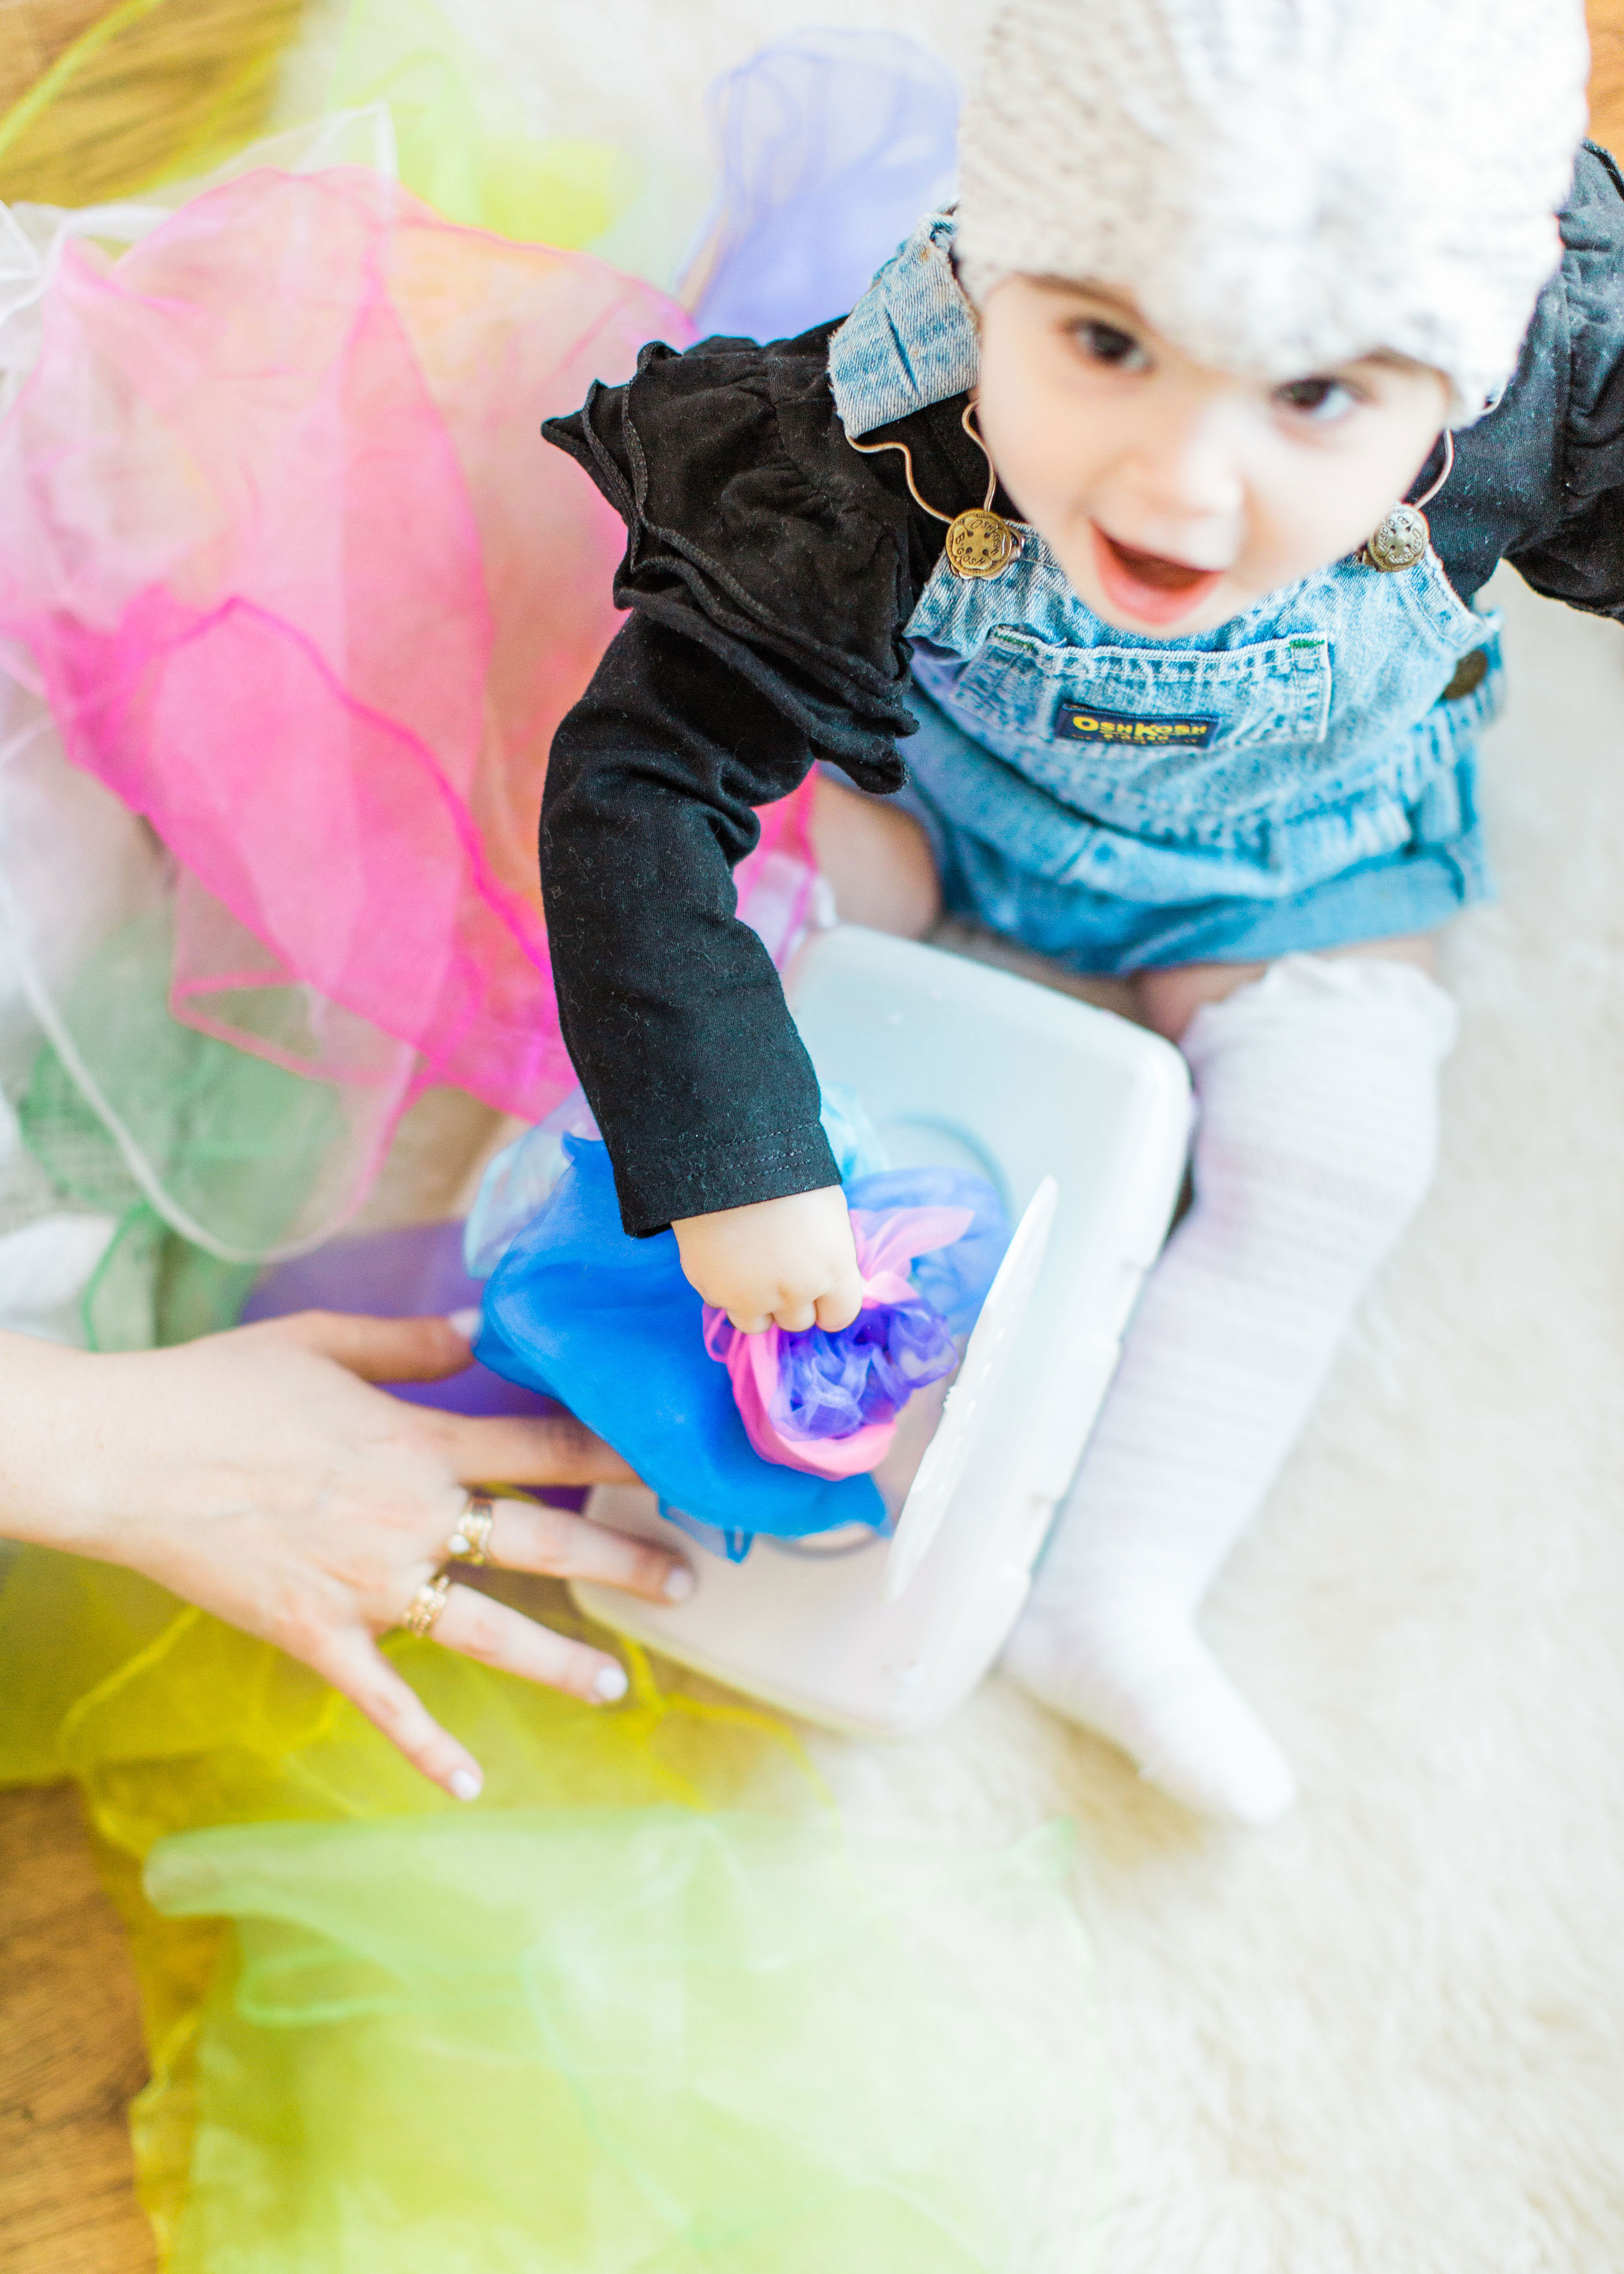 Make an easy, magic sensory toy using an empty wipes container and inexpensive colorful scarves. | Click through for the DIY. | glitterinc.com | @glitterinc